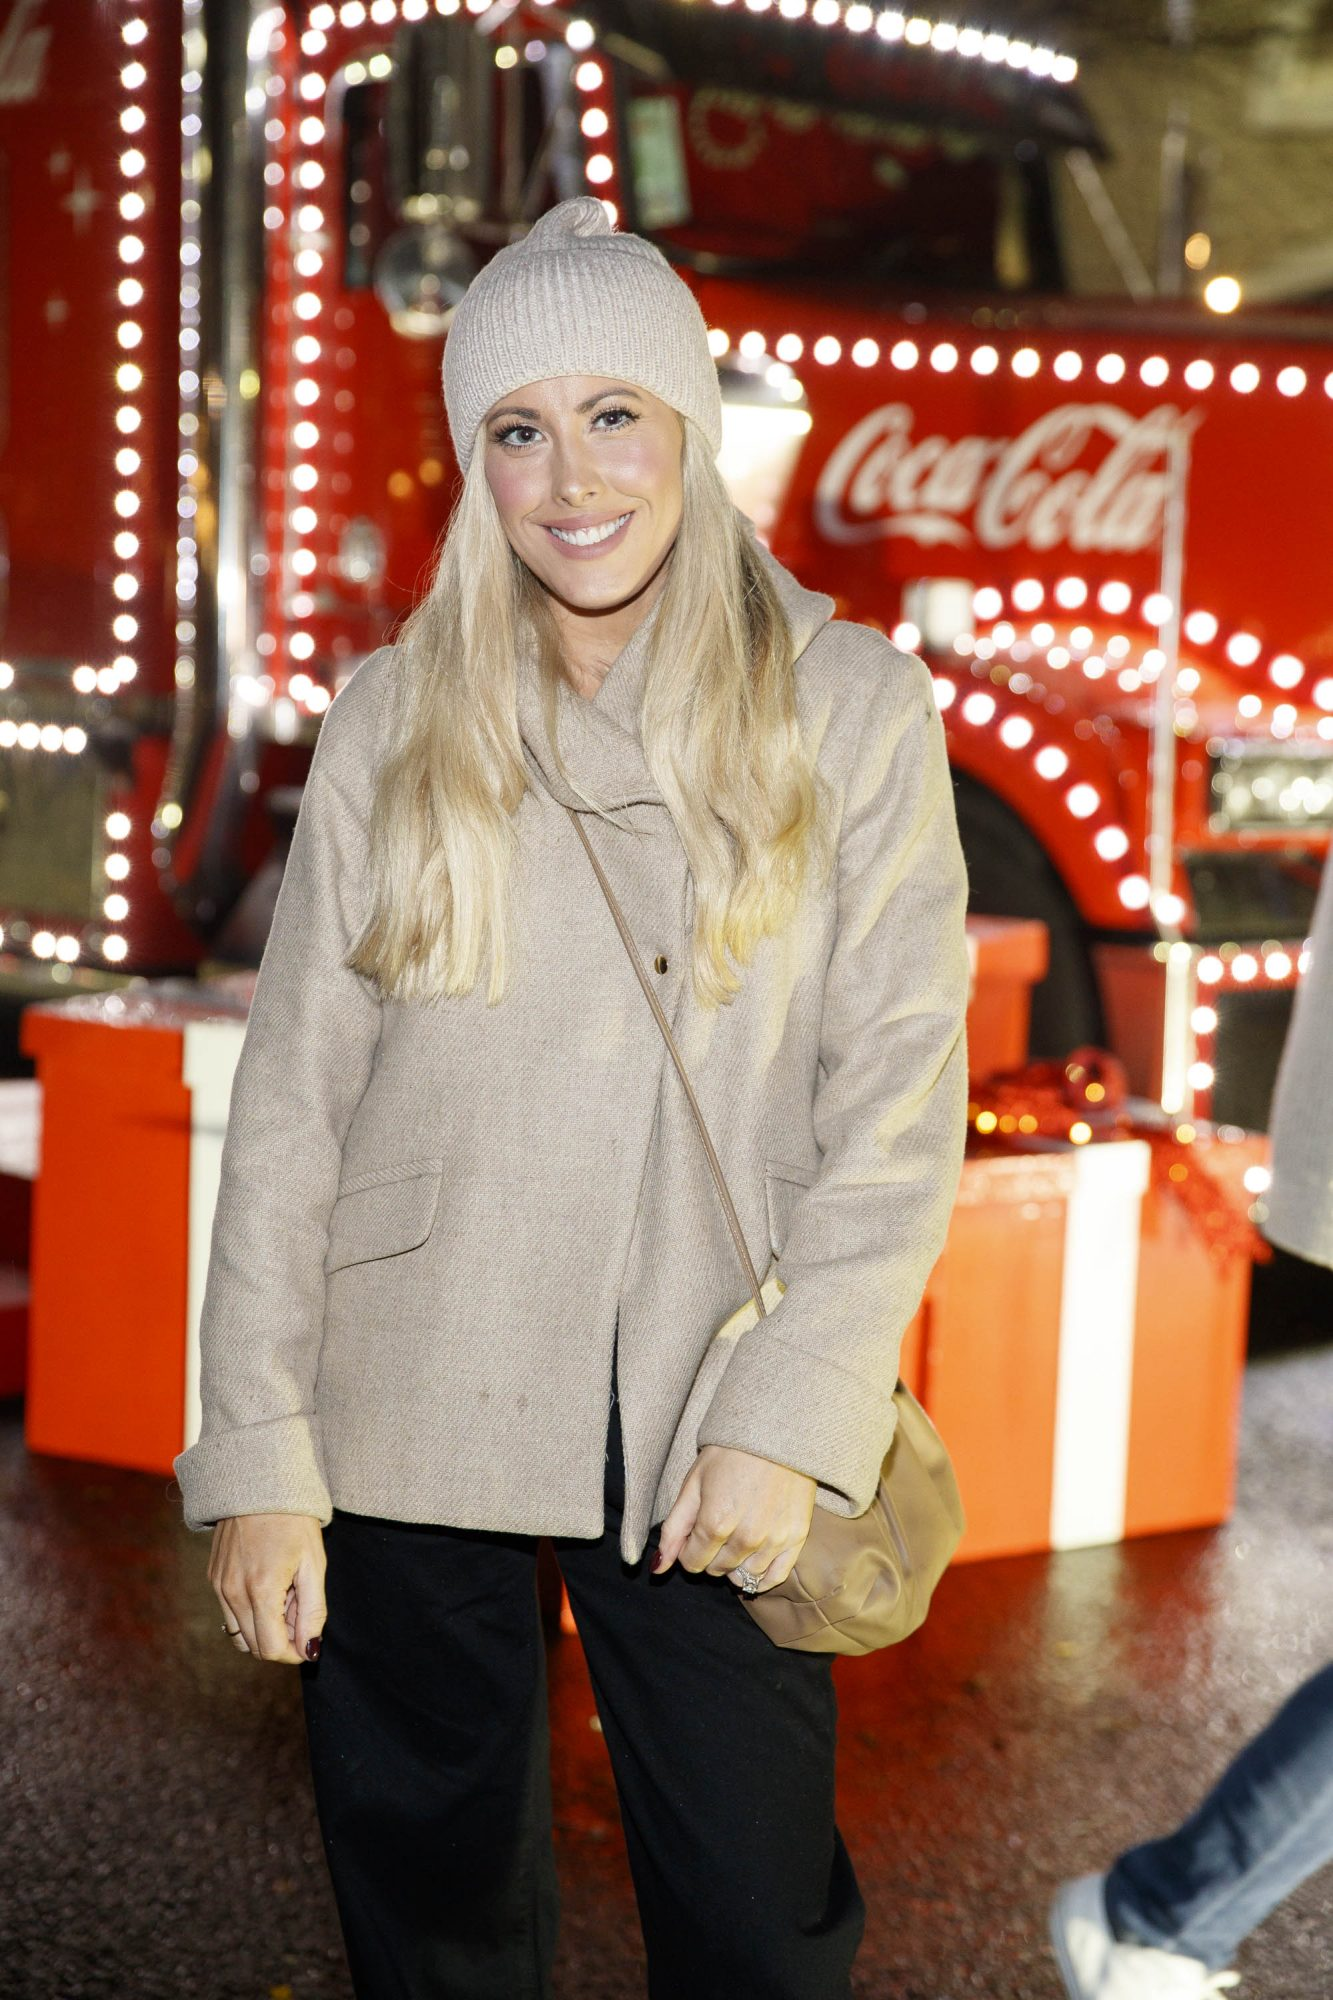 Lisa Jordan pictured at Coca-Cola's Christmas Truck Tour launch which took place Monday 25th November at the RDS, Dublin. Photo: Andres Poveda